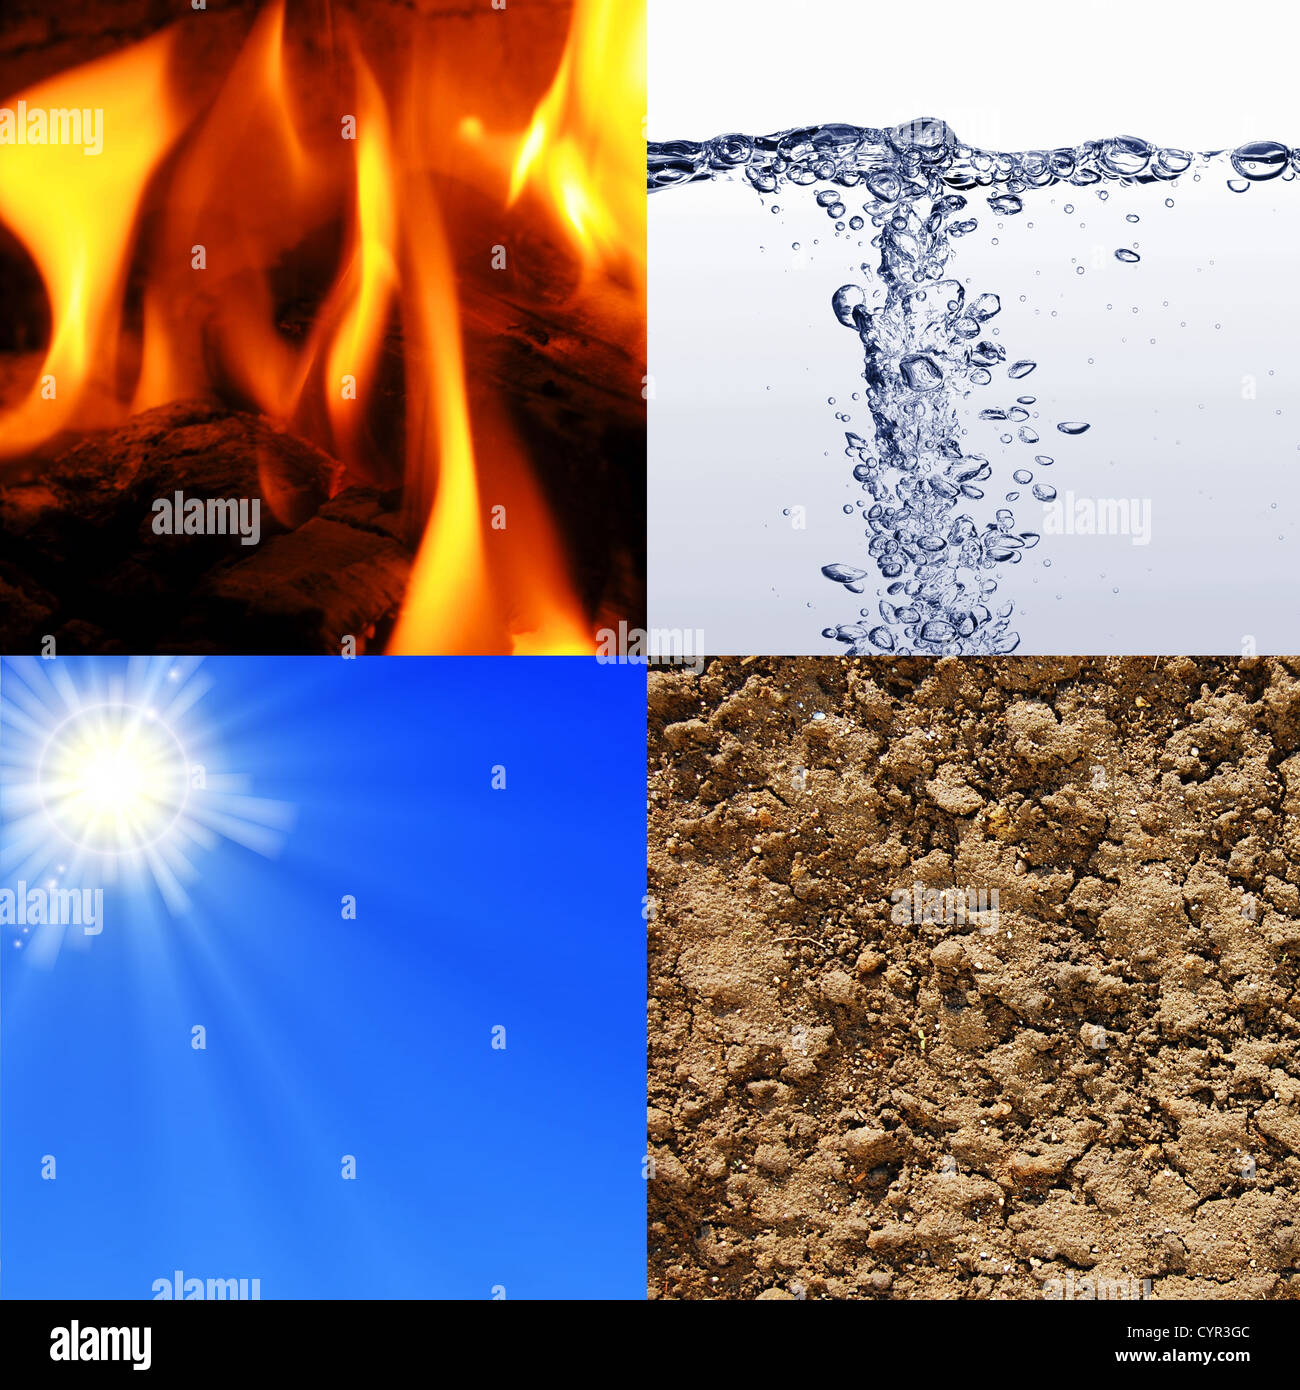 the four elements earth wind water and fire - Stock Image